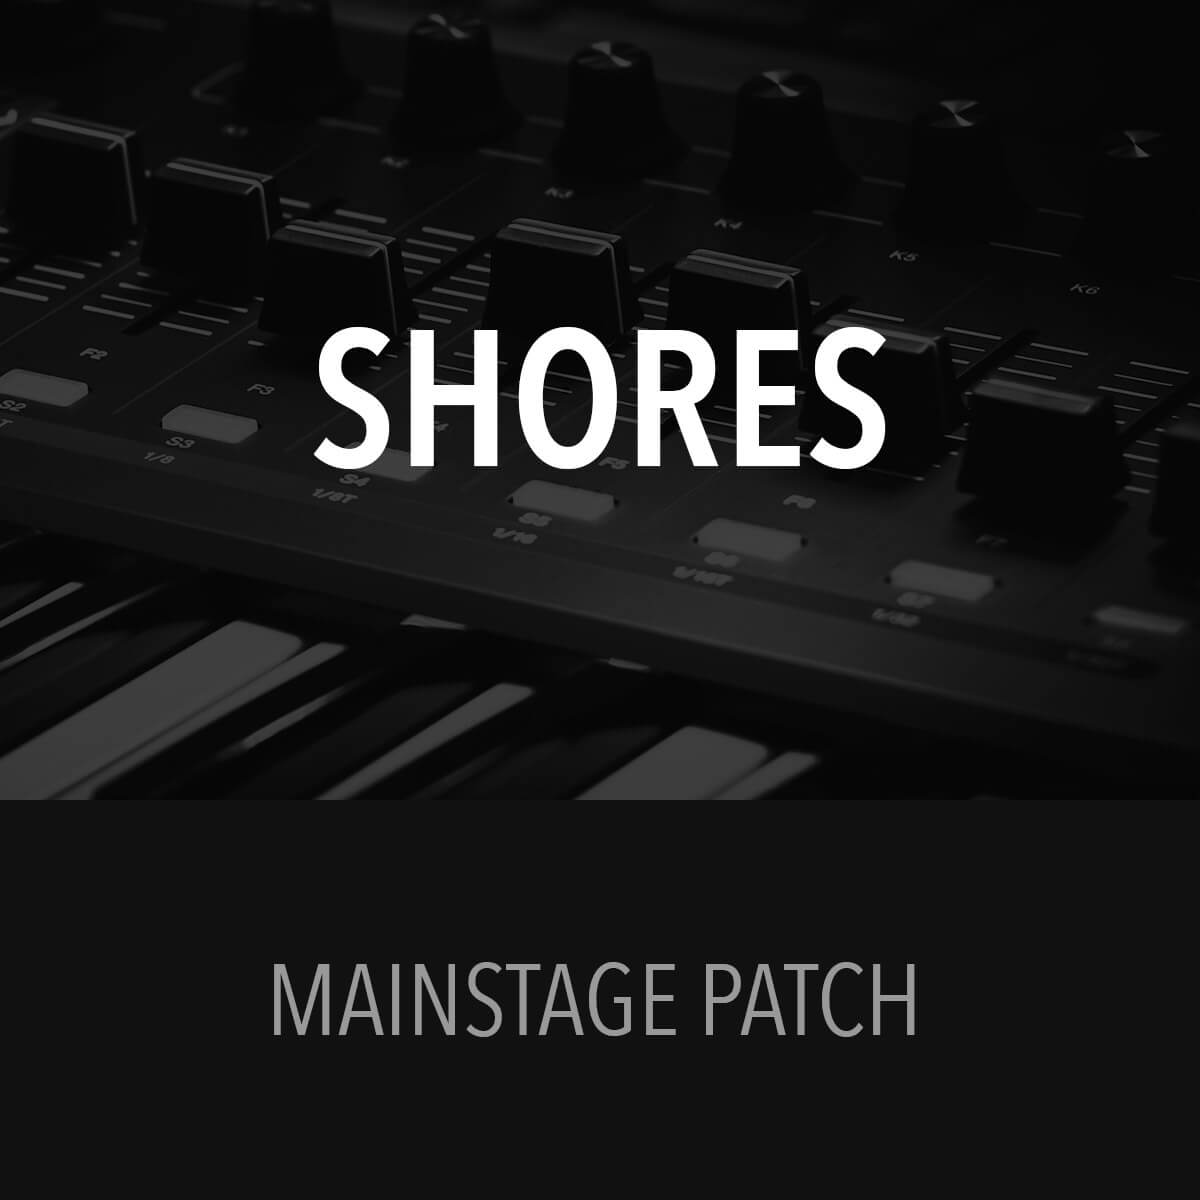 MainStage Patch - Shores - Bryan & Katie Torwalt